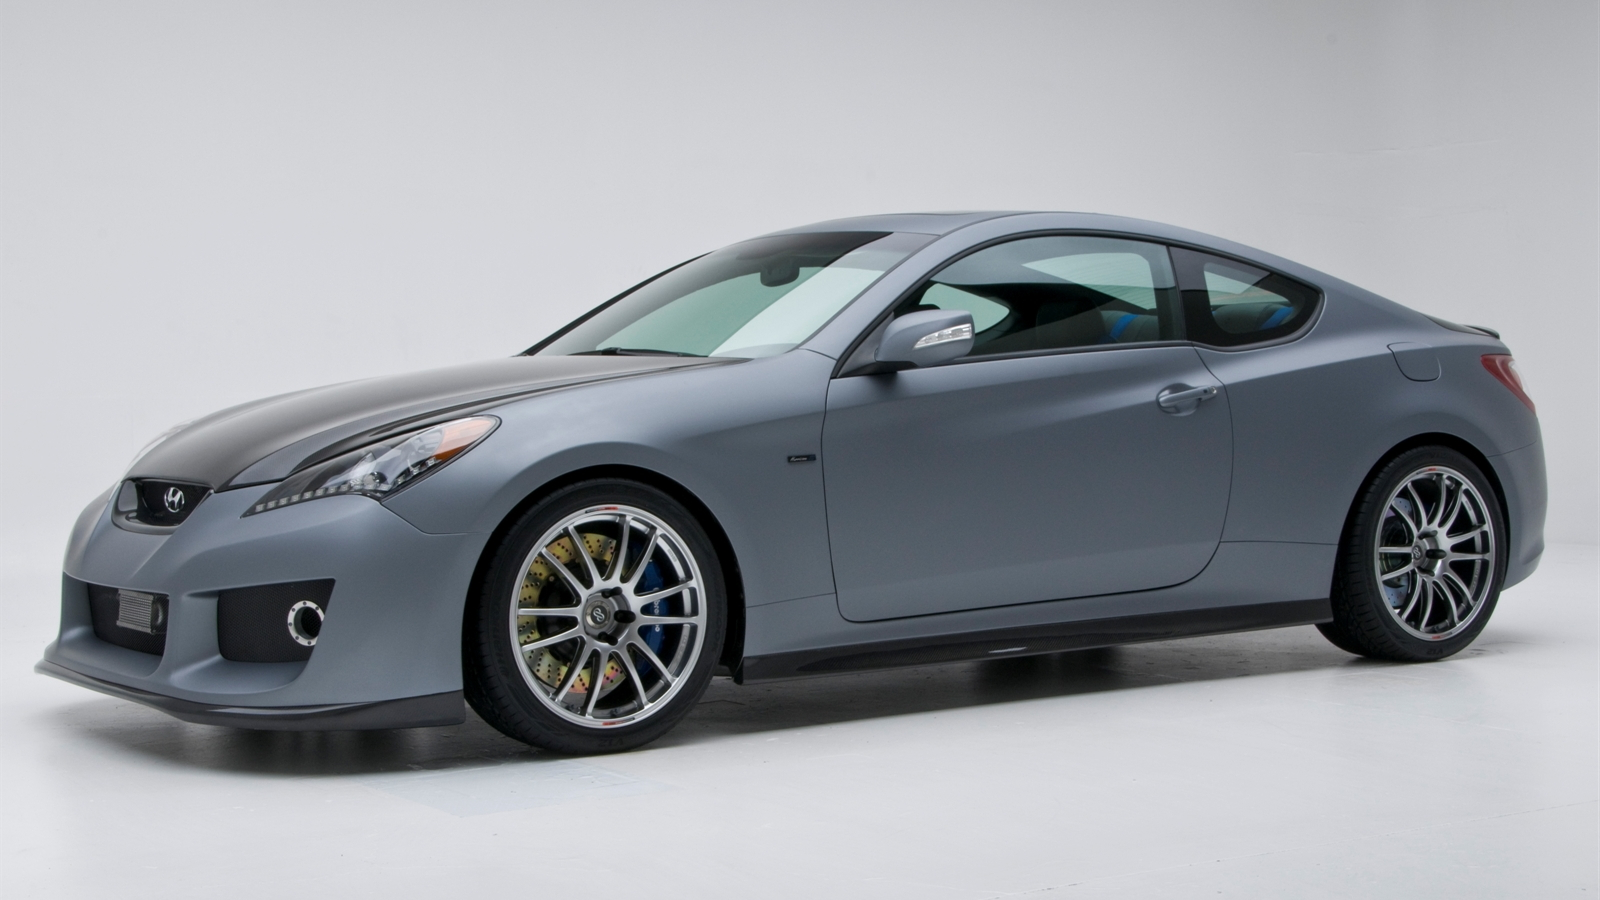 Hurricane SC Hyundai Genesis Coupe at SEMA 2011